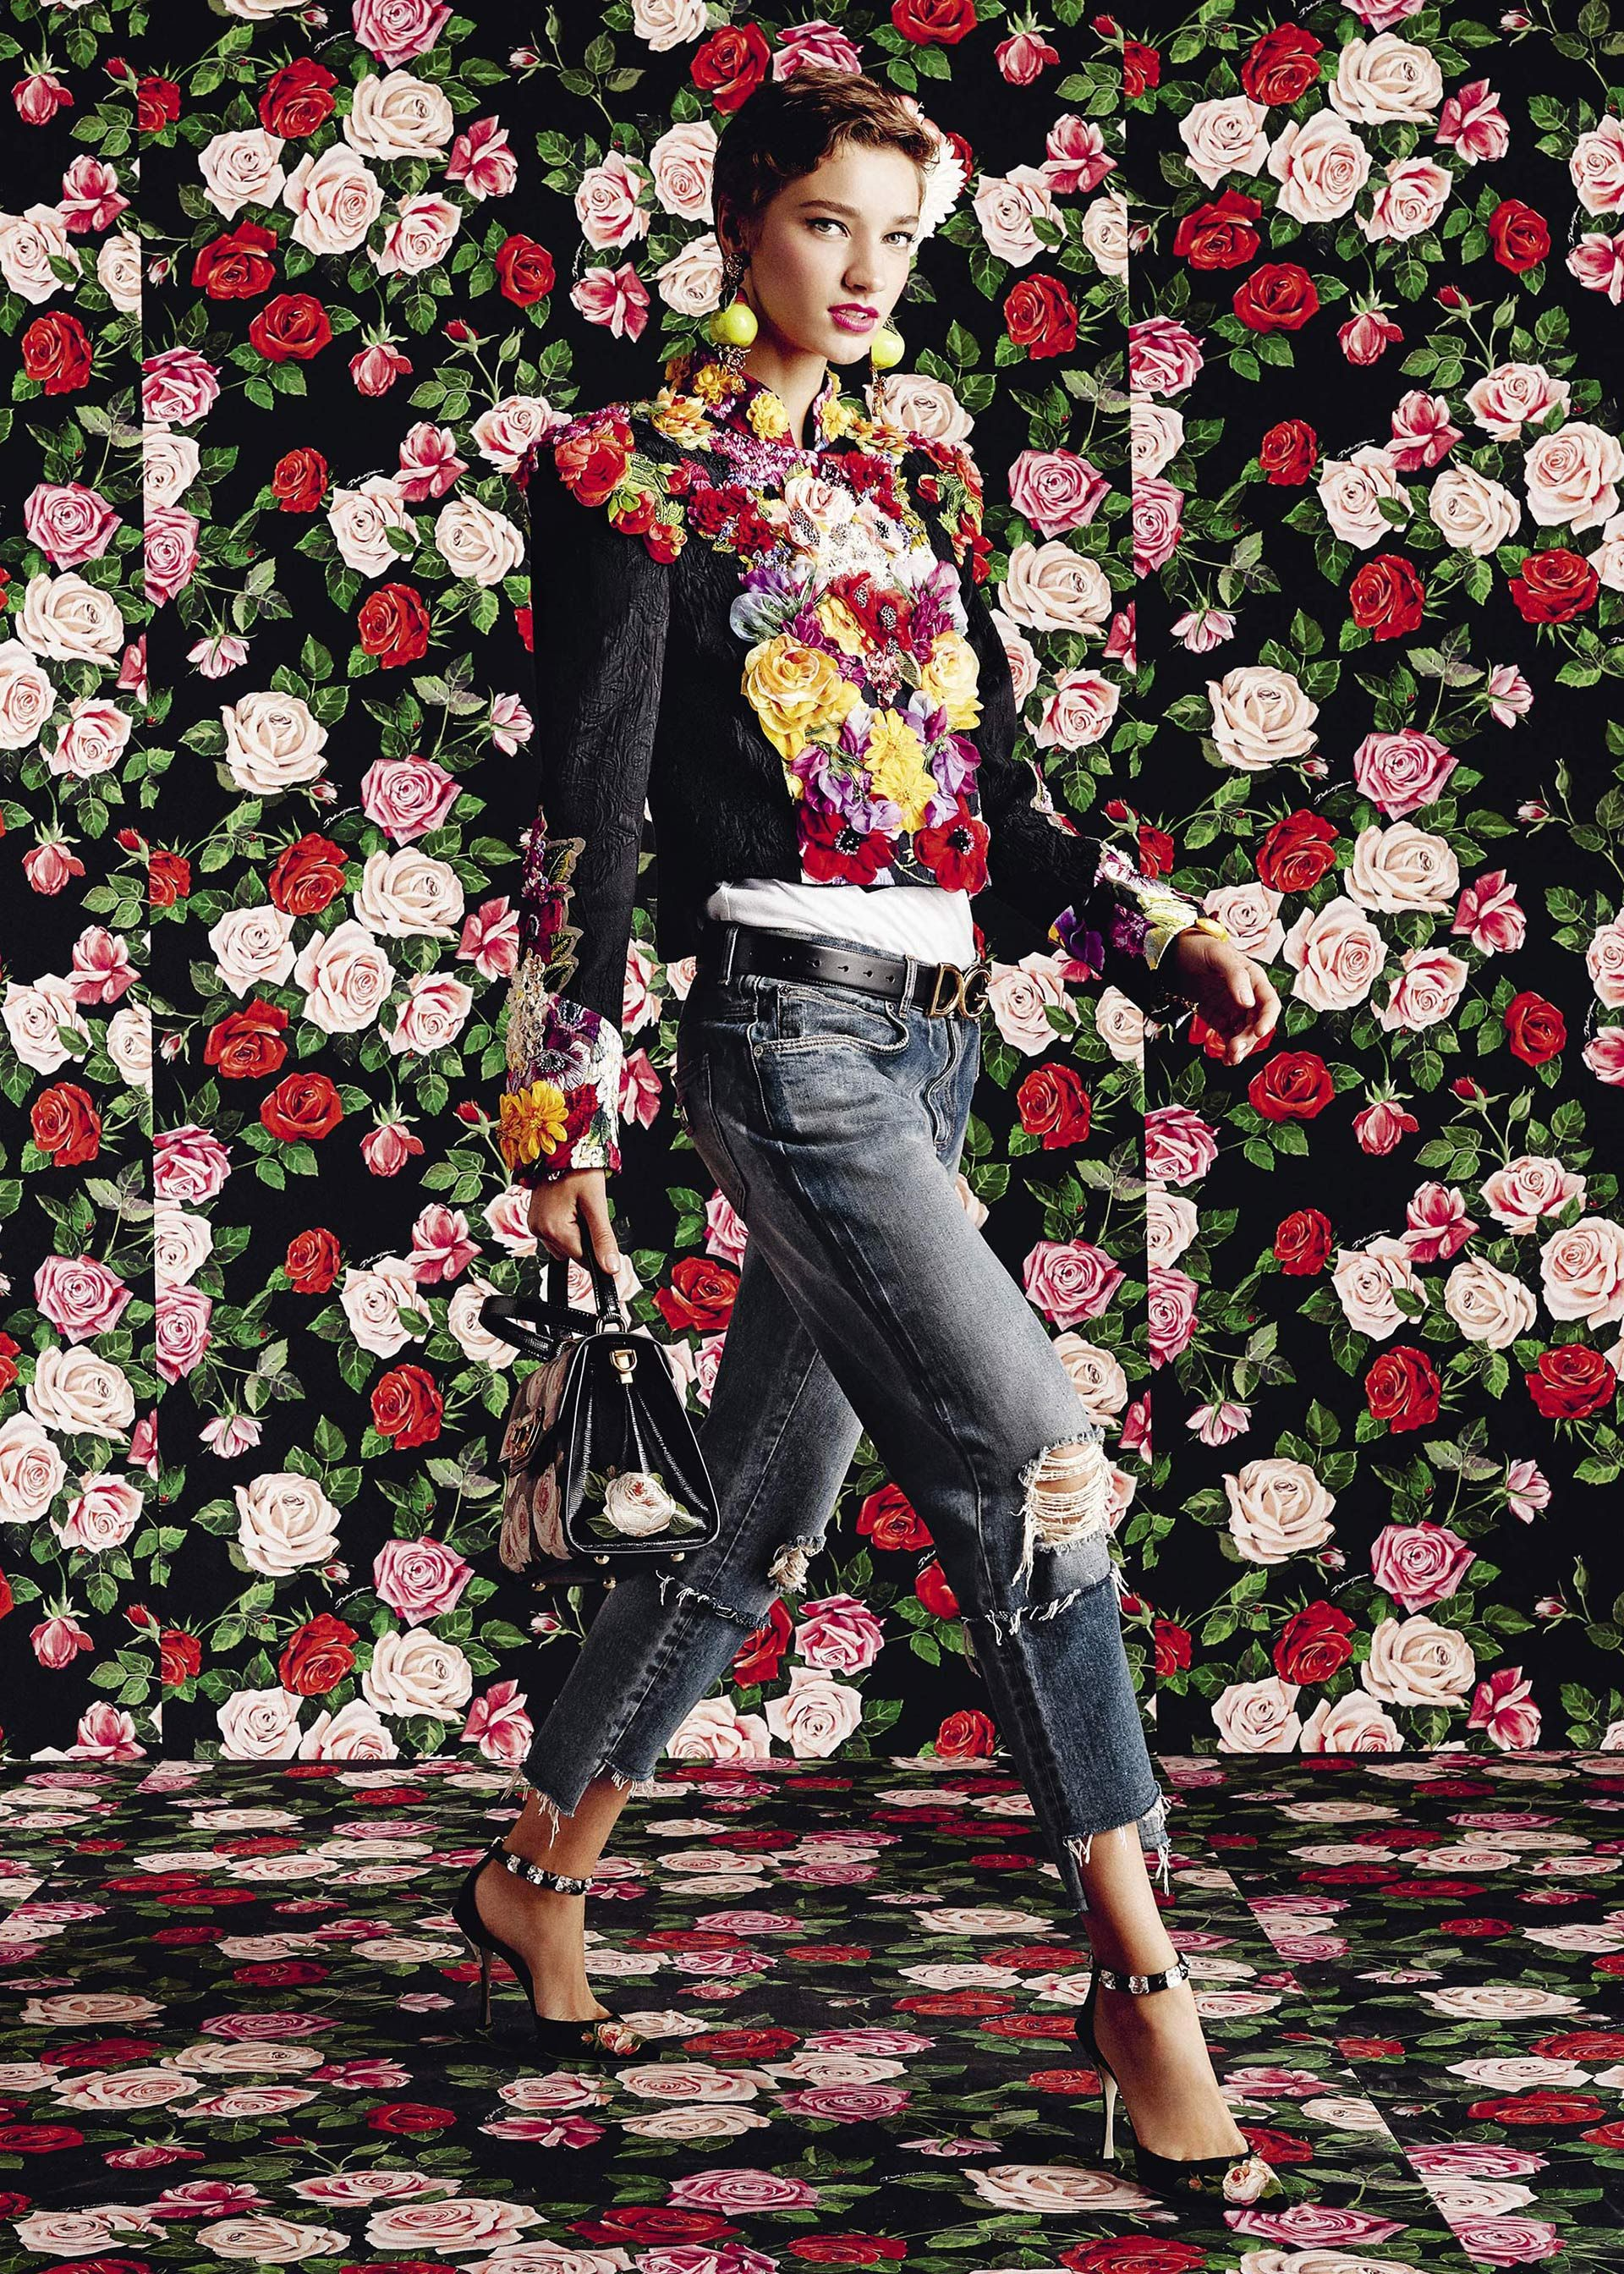 99cb8a07d3 Discover the new Dolce & Gabbana Women's Flowers Mix Collection for Spring  Summer 2019 and get inspired. Visit the official website Dolcegabbana.com.